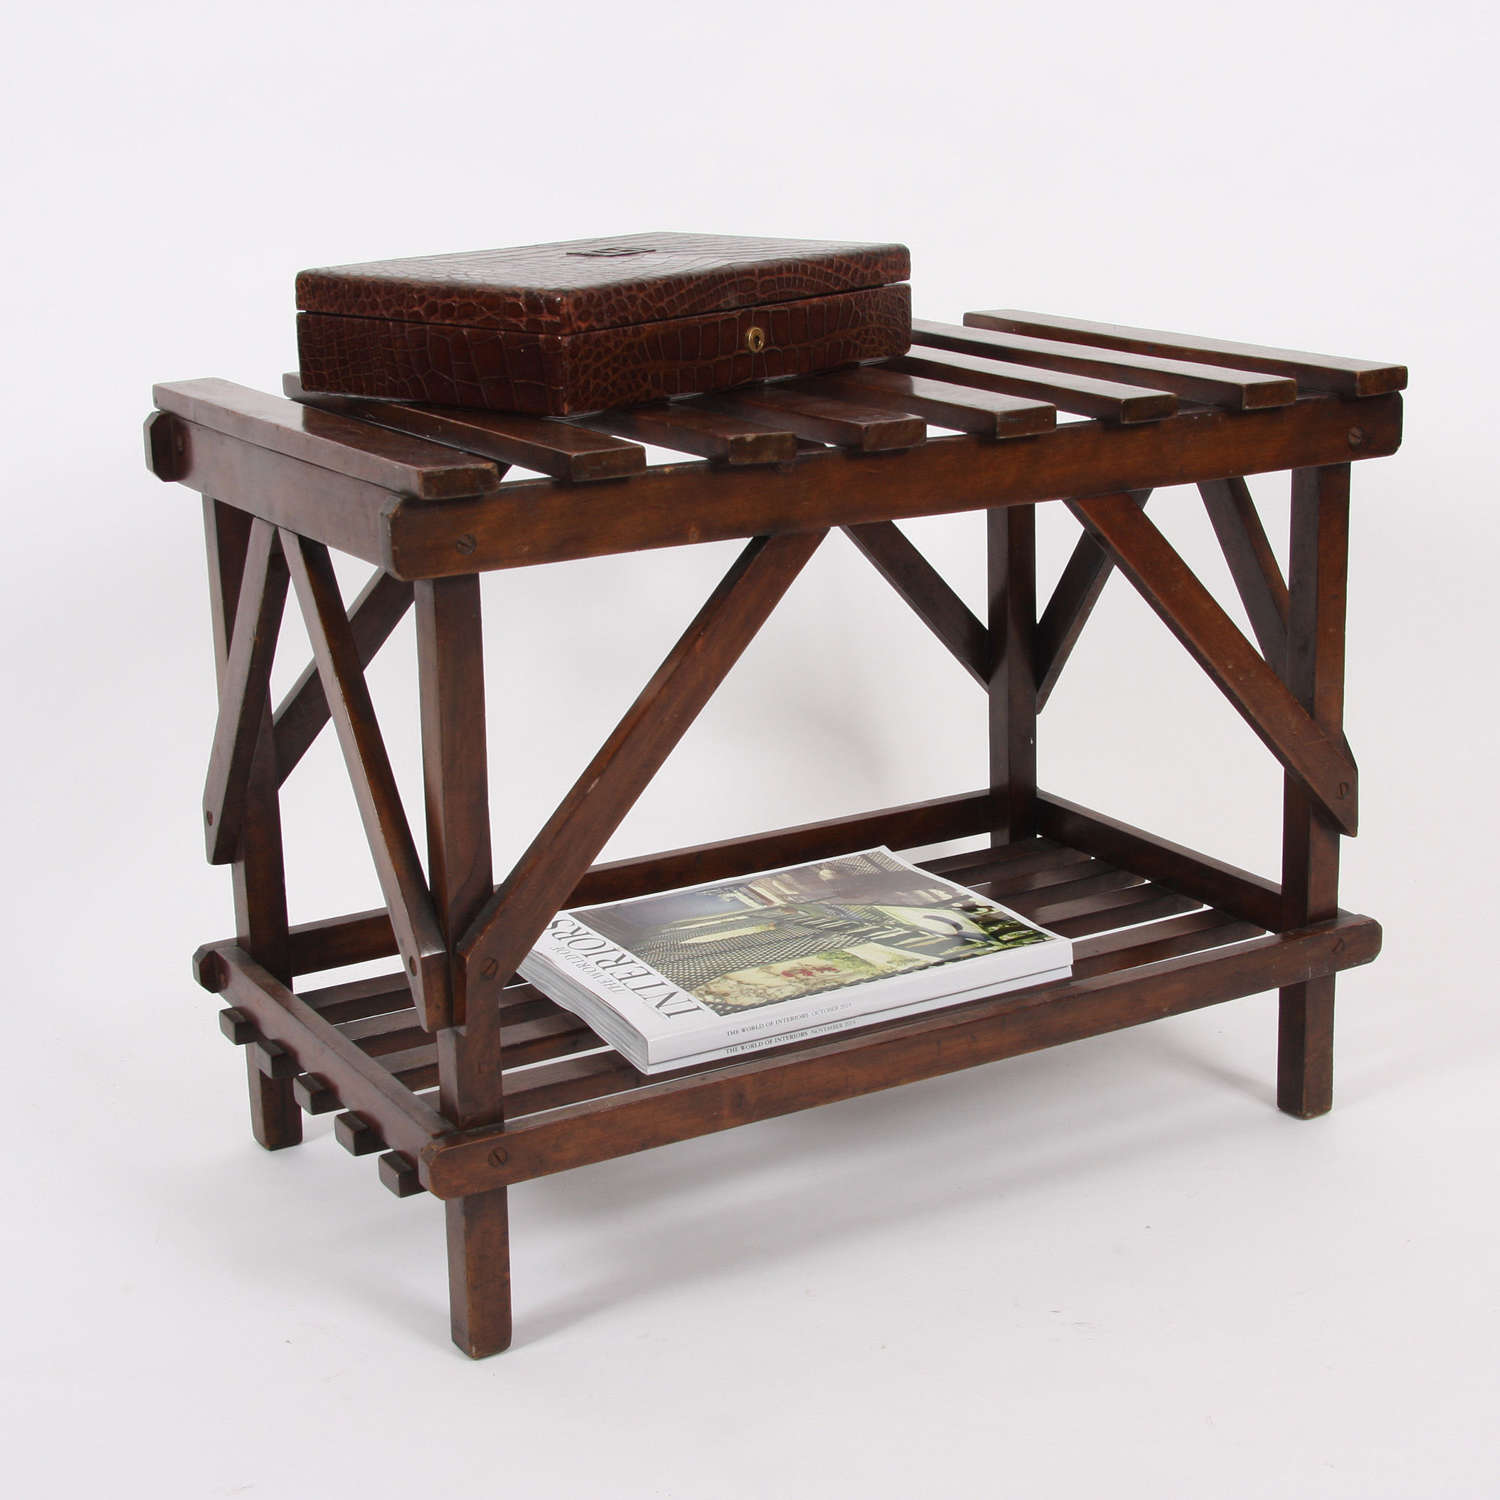 English 1920s Two-Tier Luggage Rack